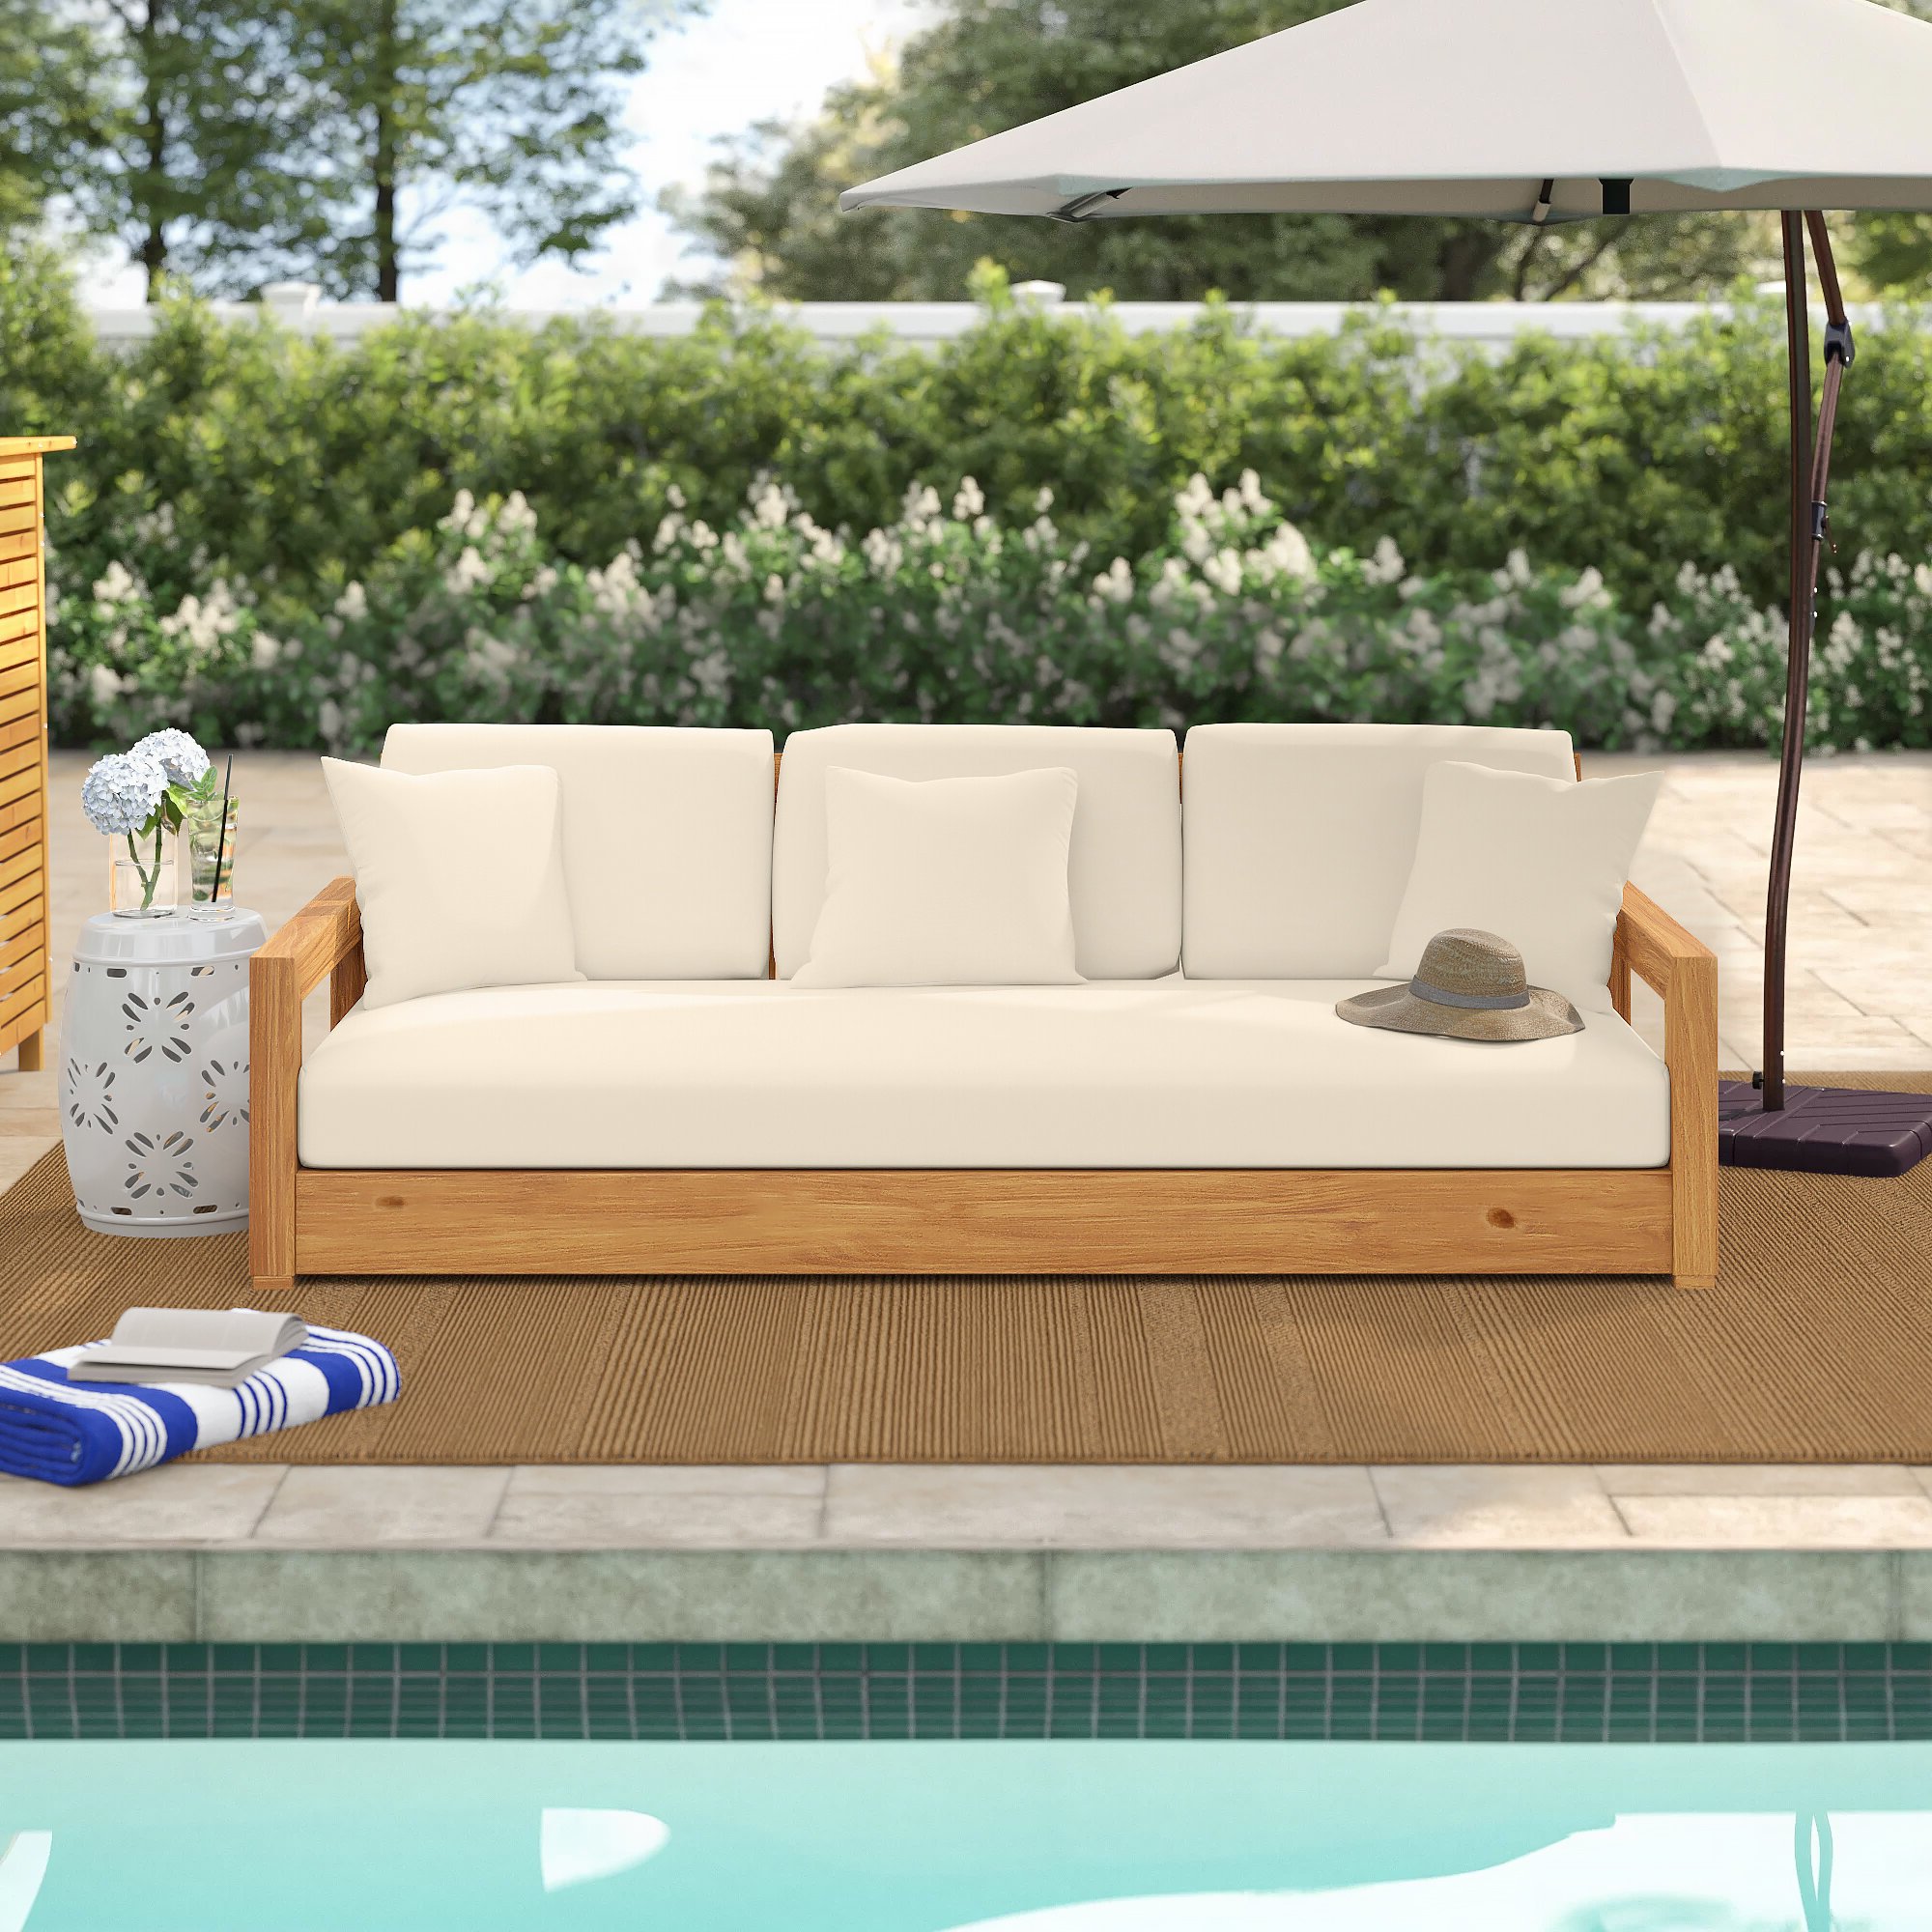 Wayfair For Most Recently Released Lakeland Teak Patio Sofas With Cushions (View 19 of 20)